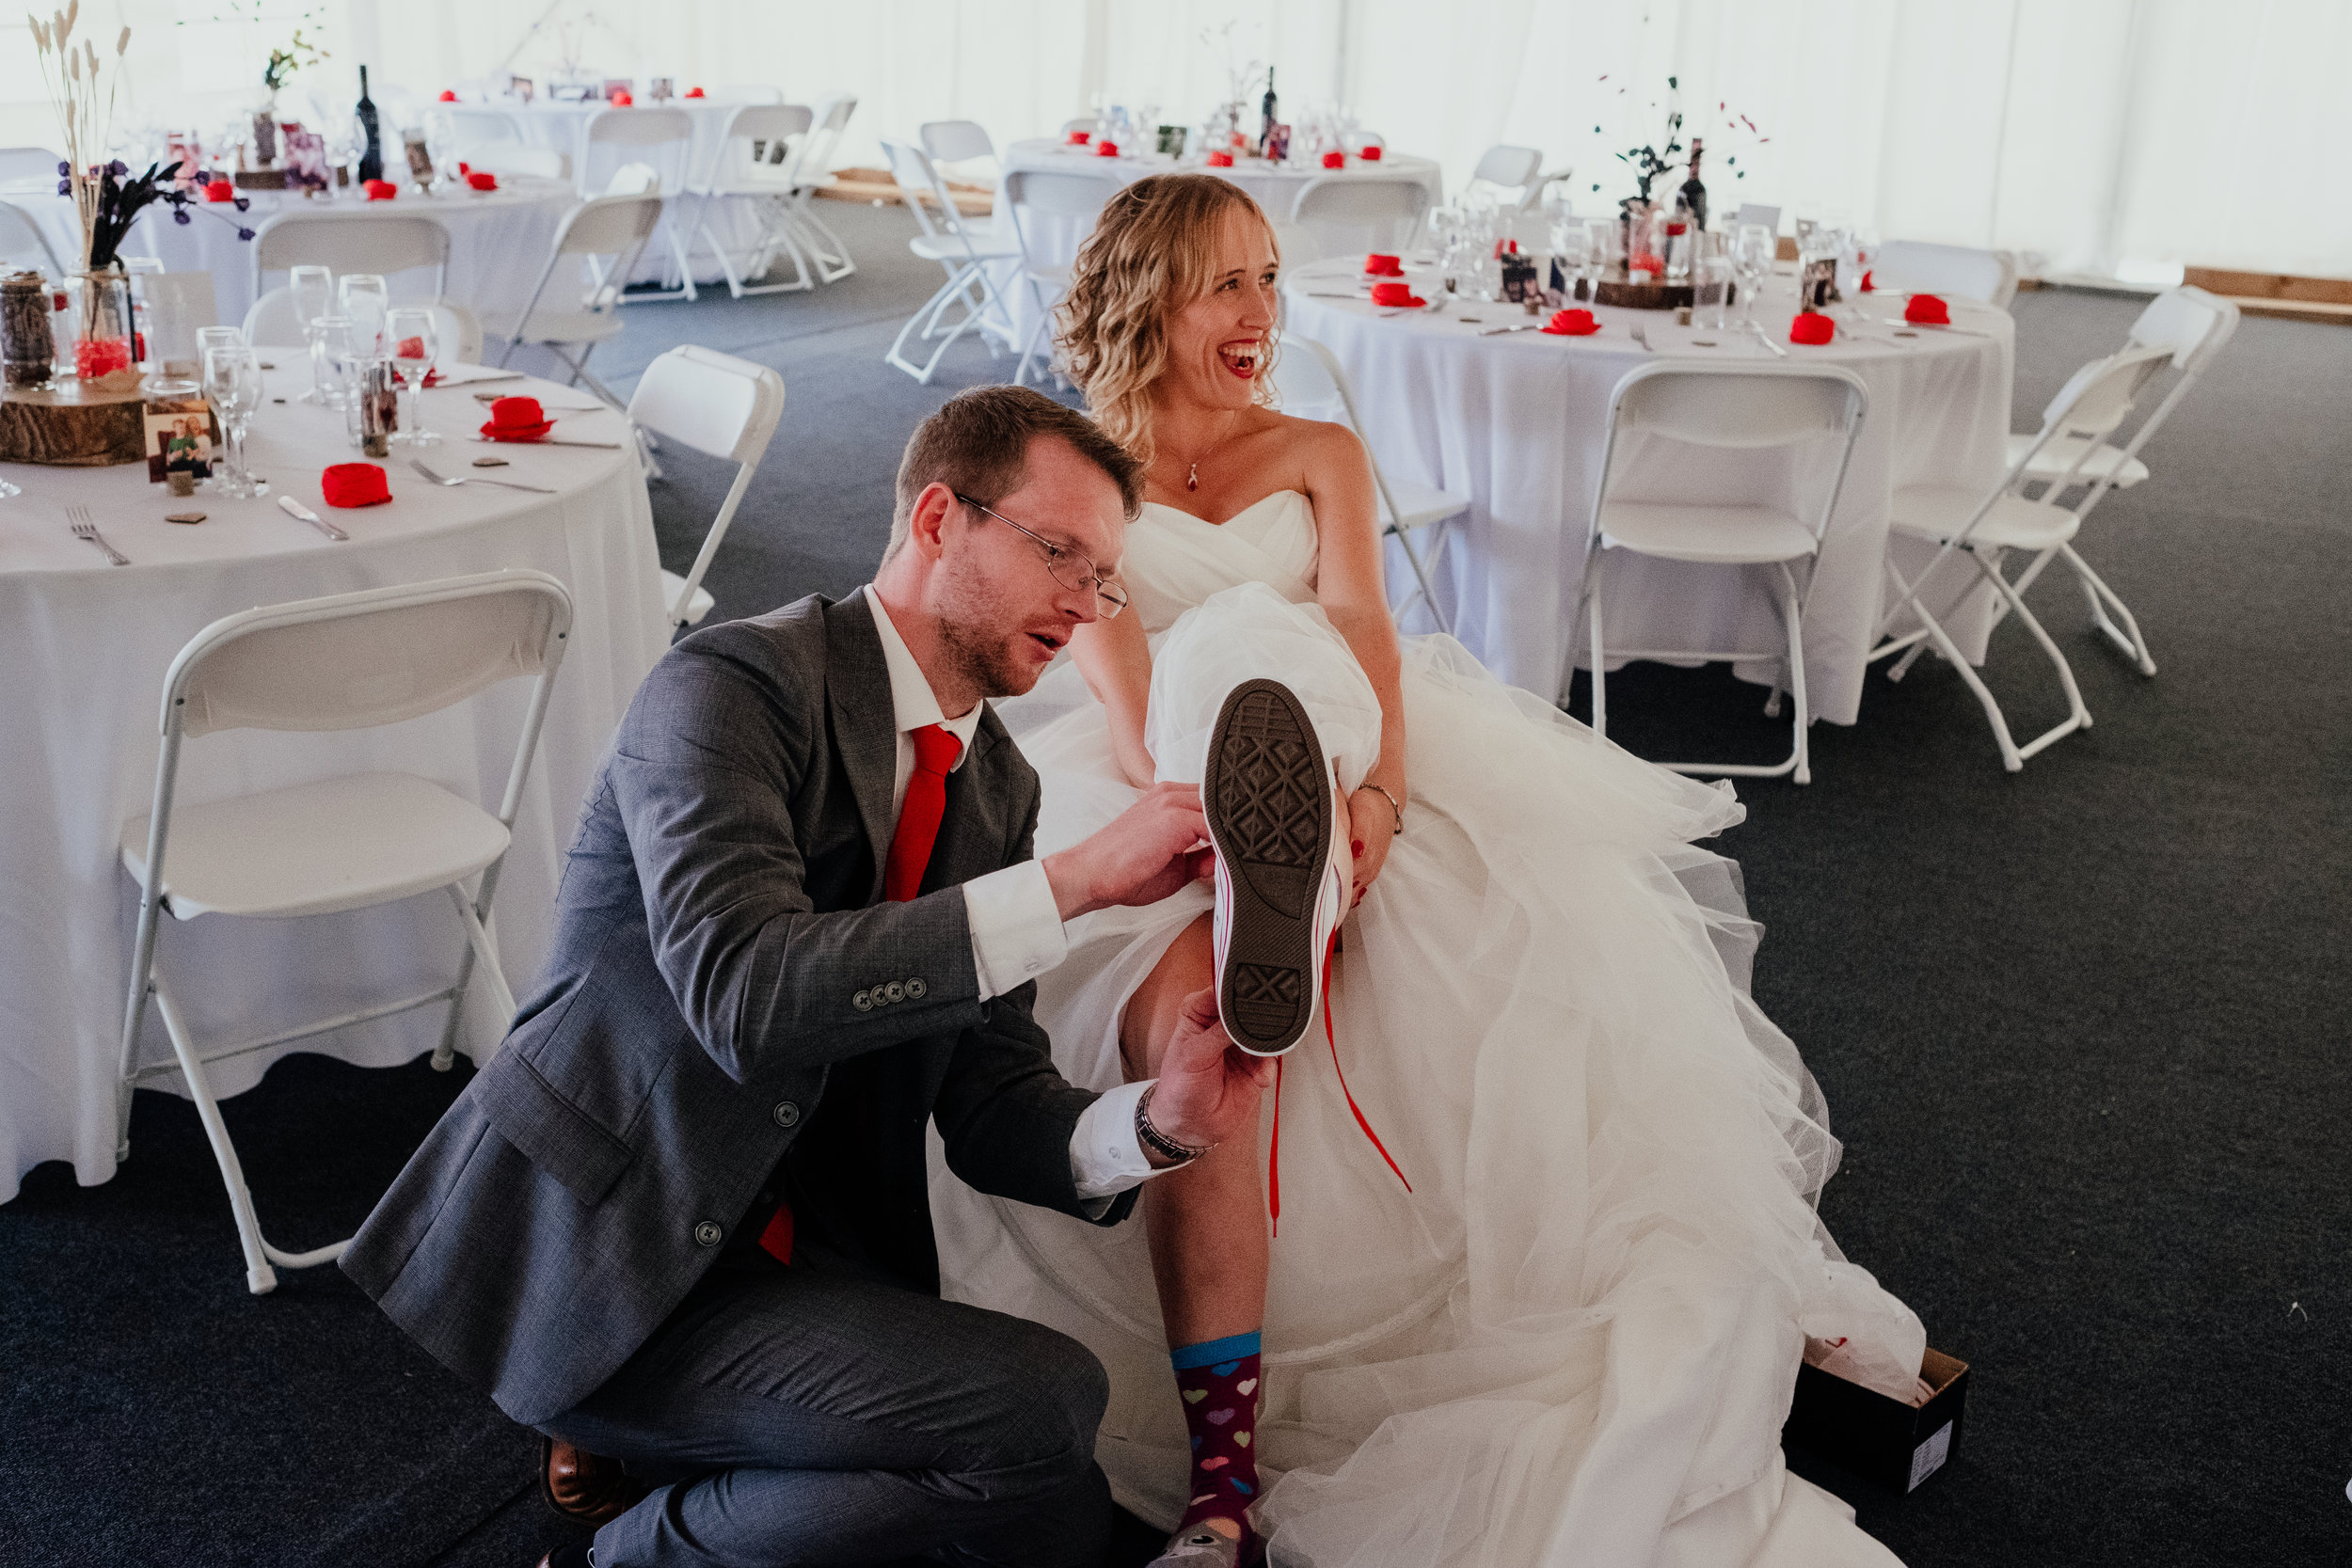 Bride and groom putting on wedding converse